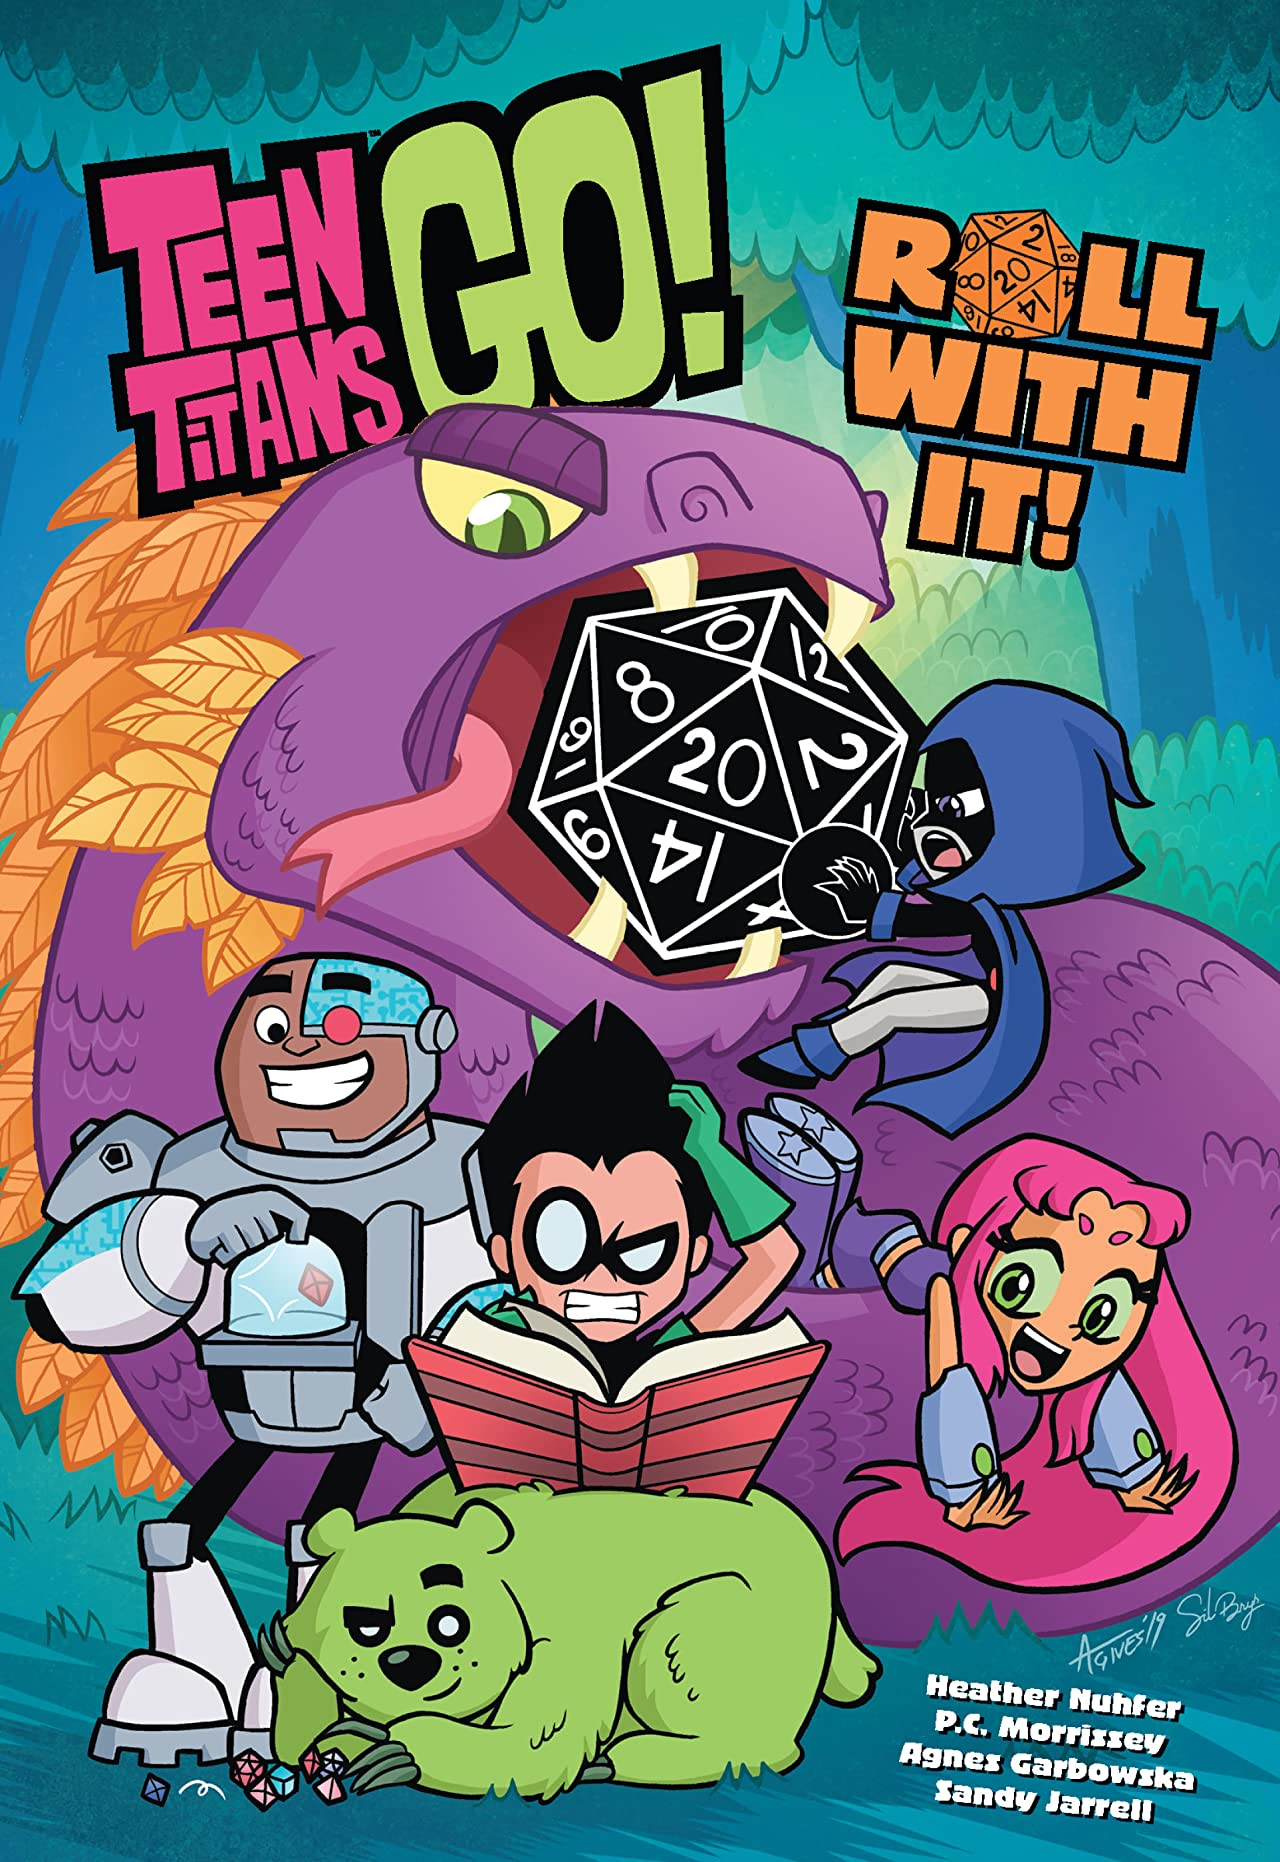 Teen Titans Go!: Roll With It!